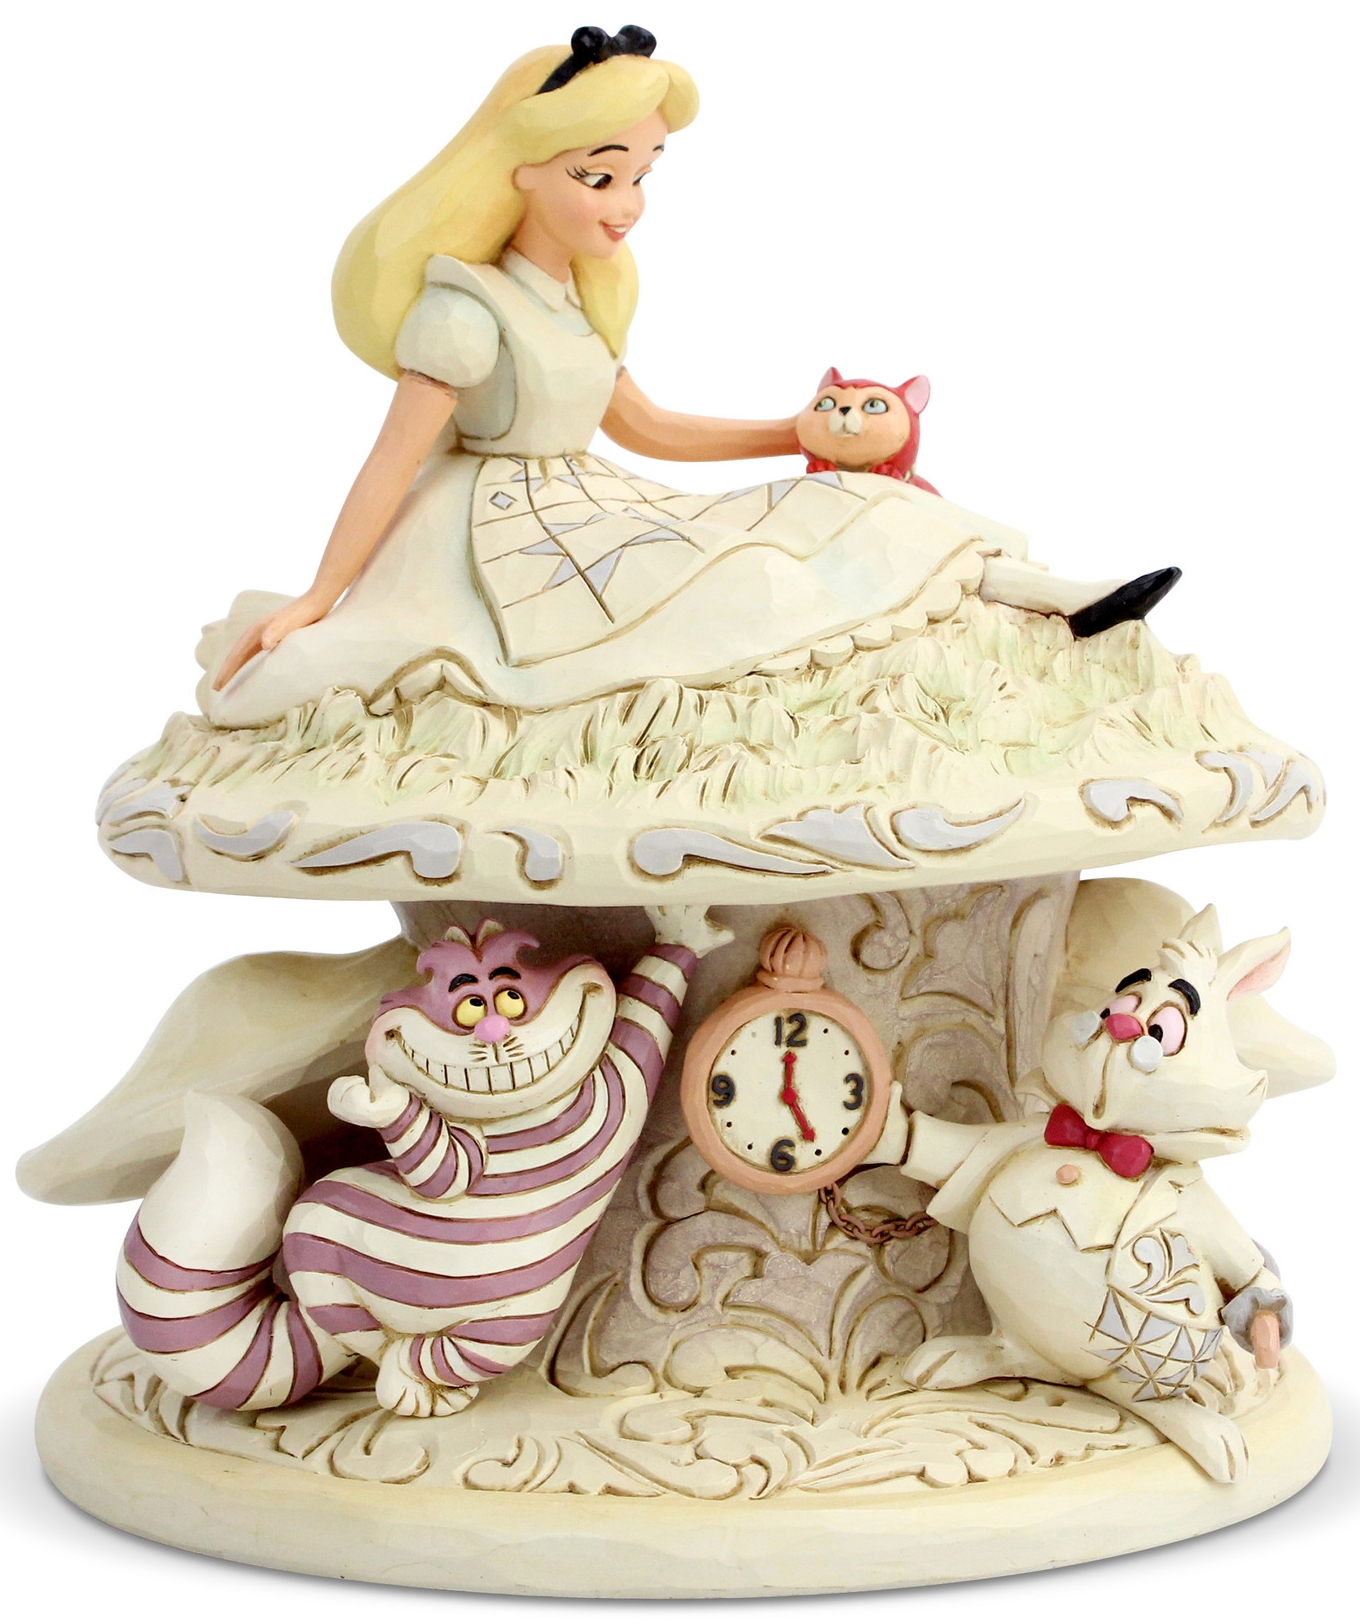 Jim Shore Disney 6005957N Alice White Woodland Figurine